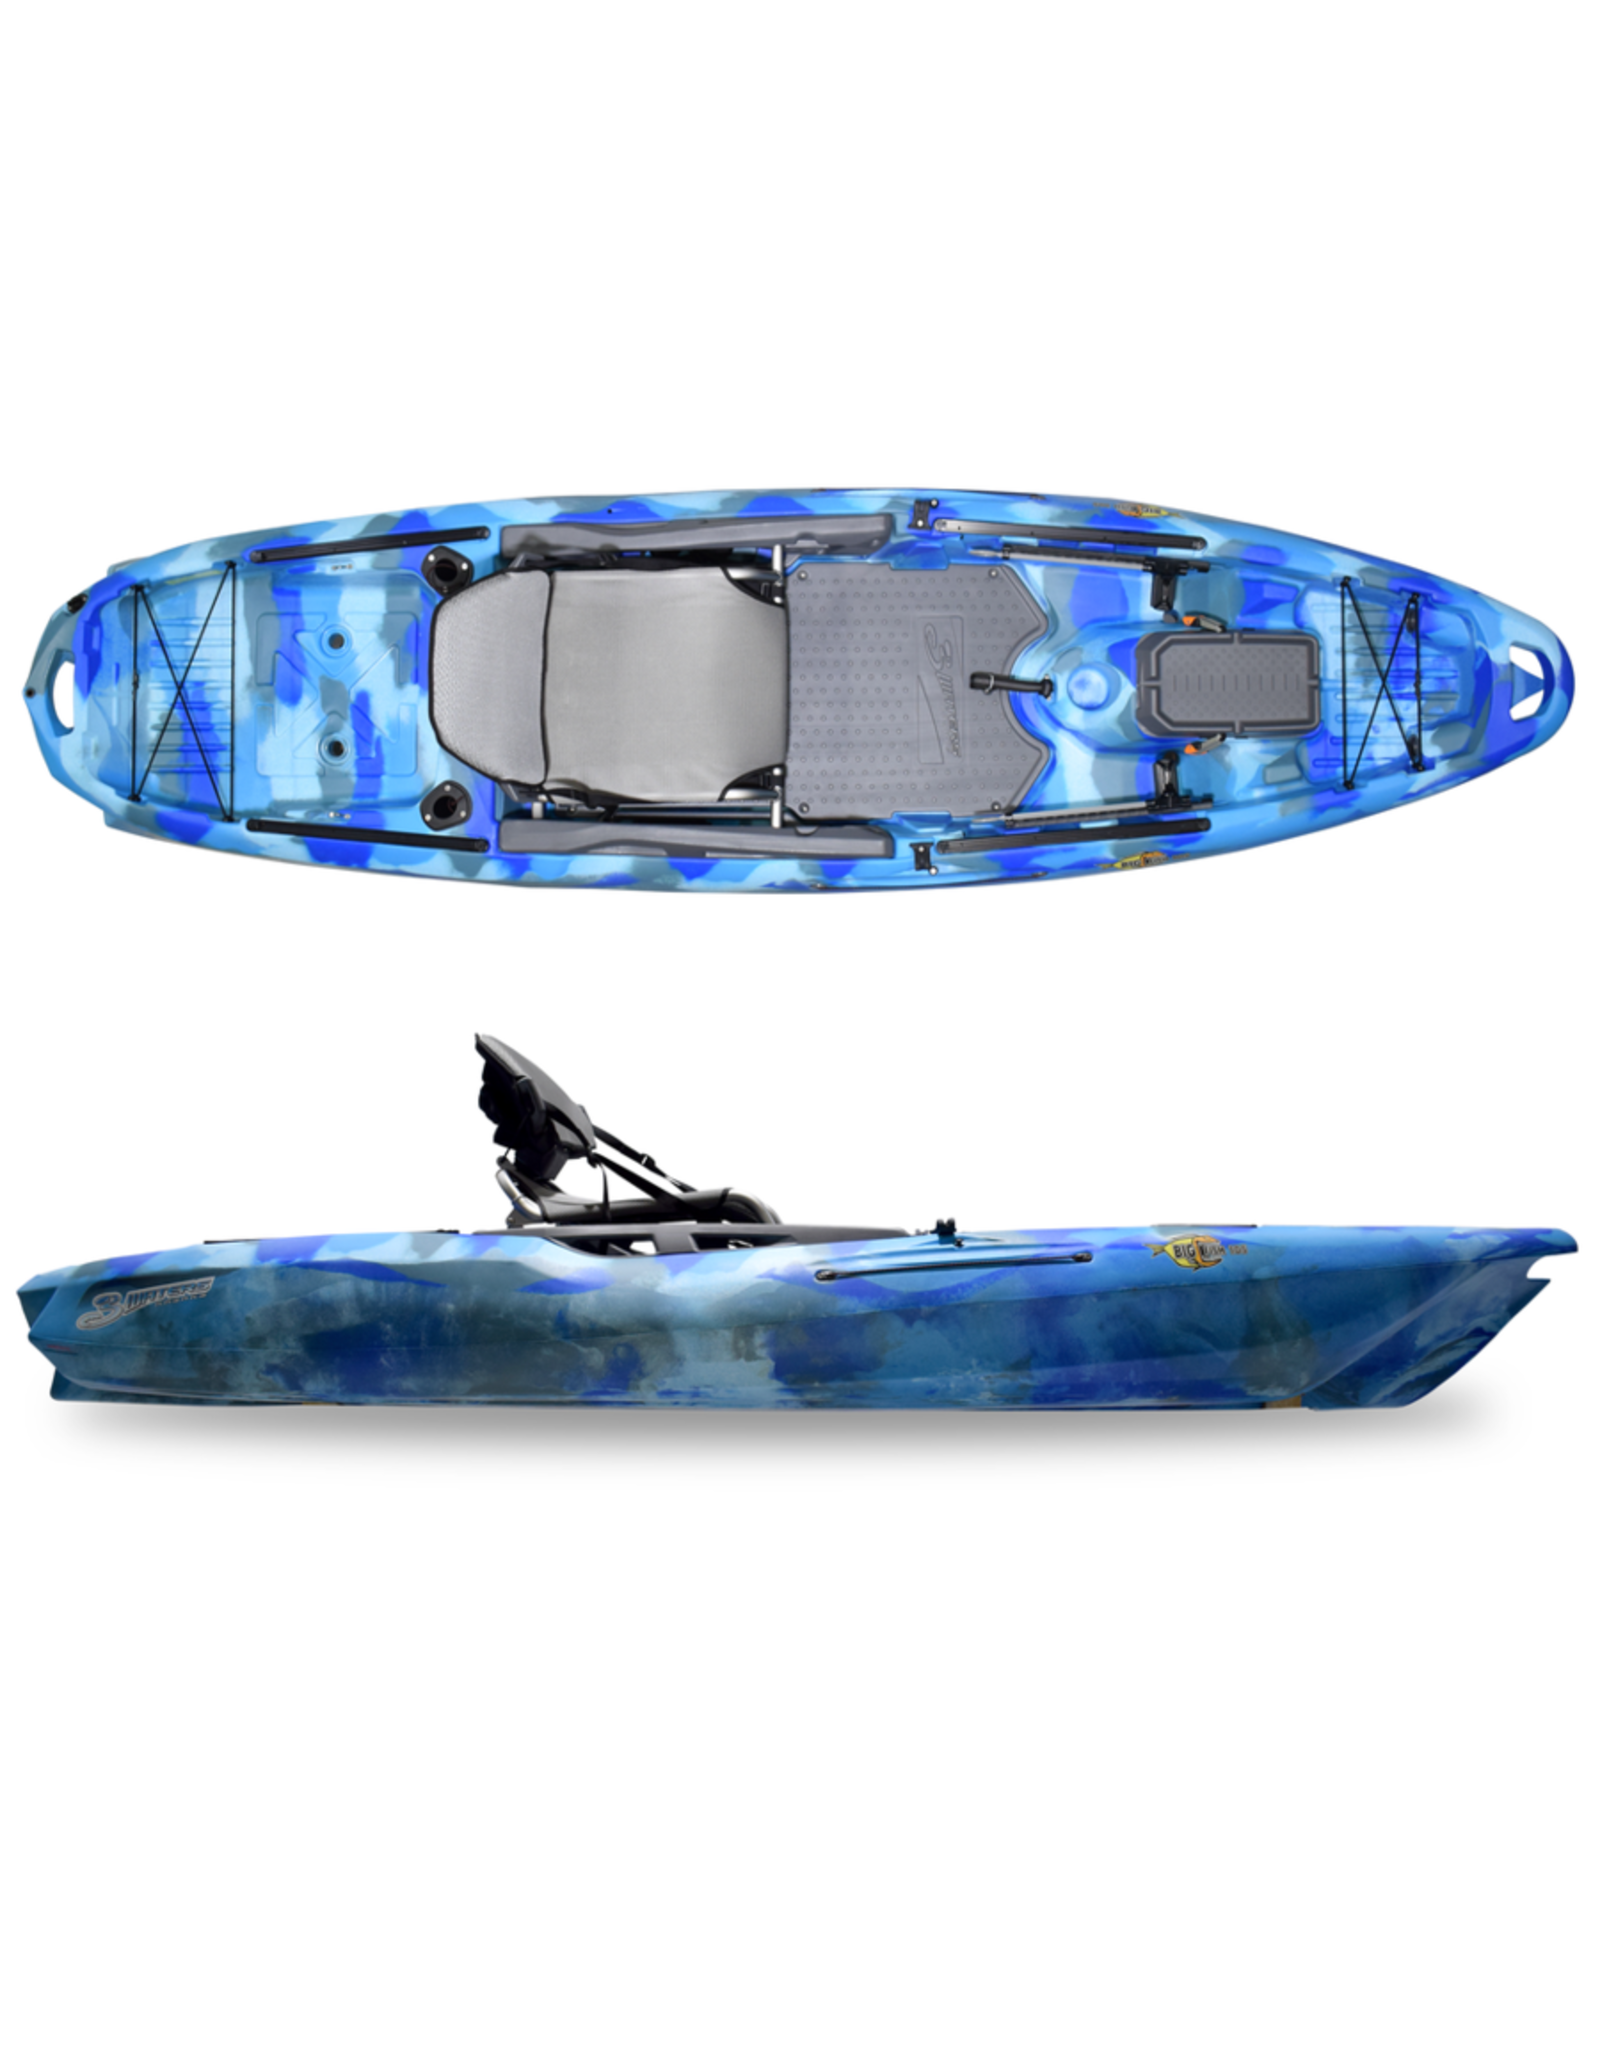 3 Waters Kayaks 3 Waters kayak Big Fish 105